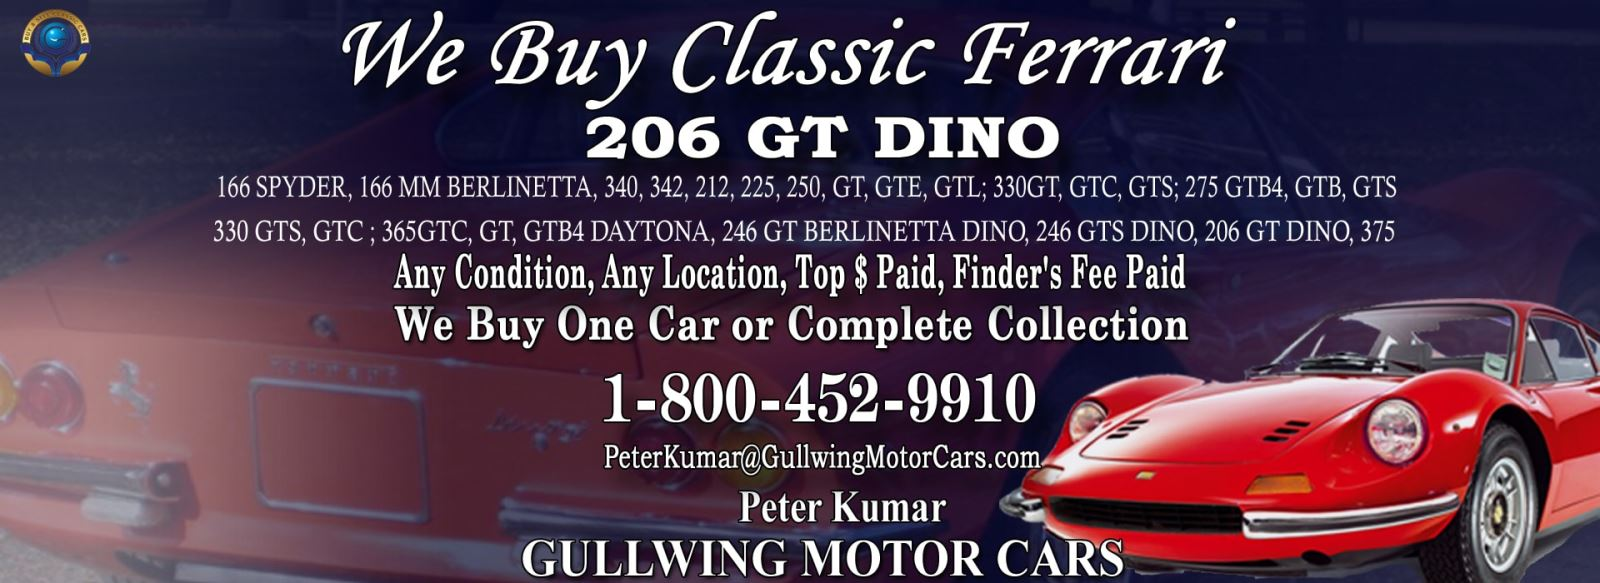 Classic Ferrari 206 GT Dino for sale, we buy vintage Ferrari 206GT Dino. Call Peter Kumar. Gullwing Motor